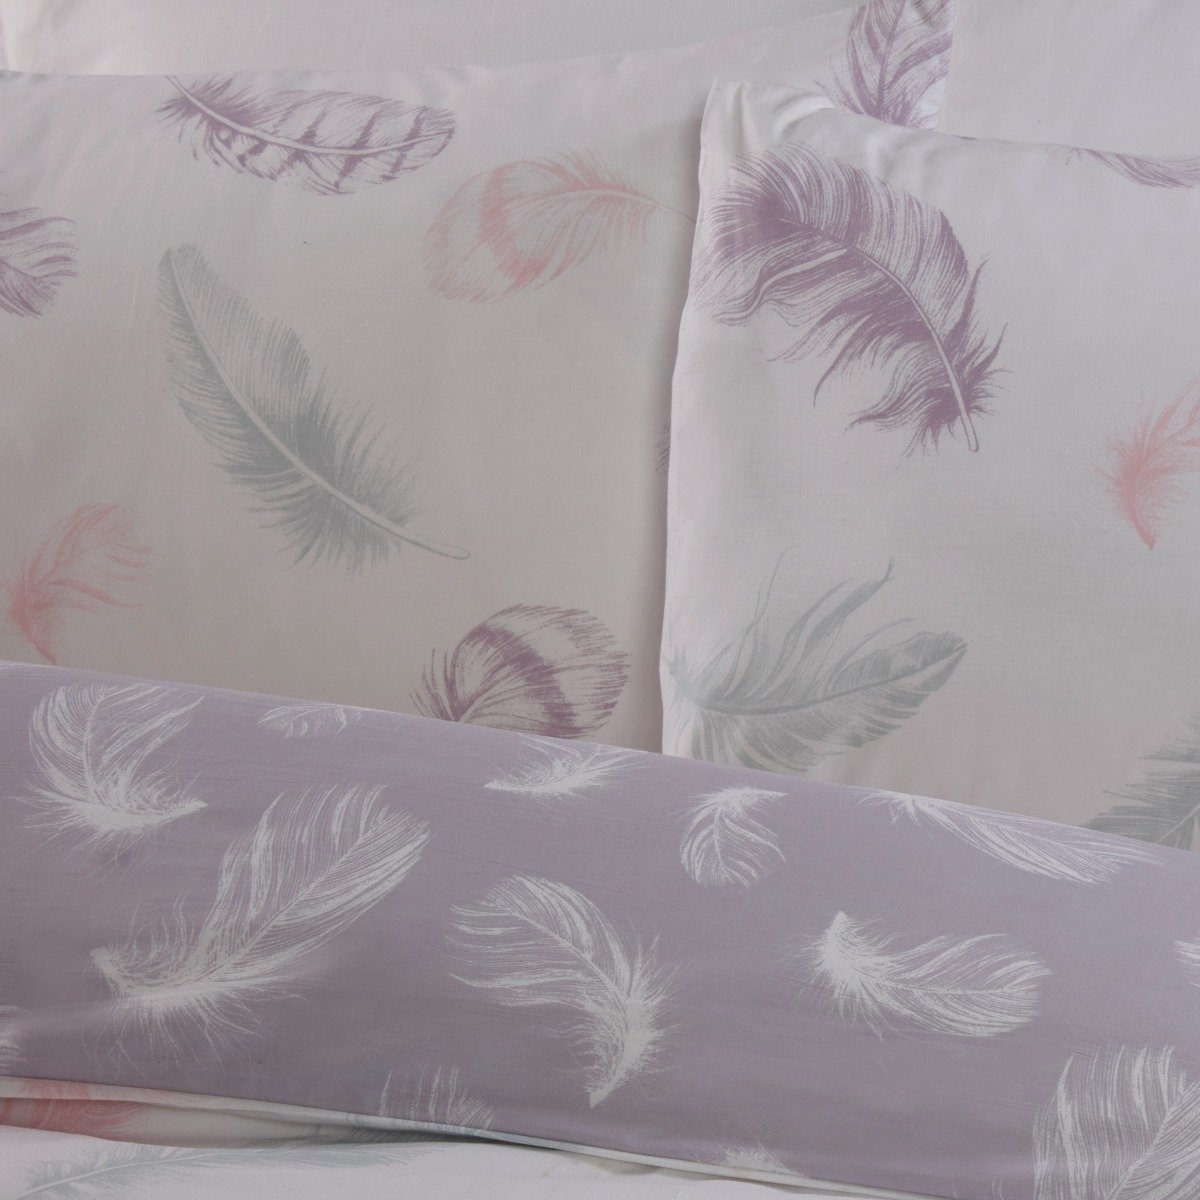 Feather Print Bedding - Cotton Rich 200 Thread Count Duvet Cover and Pillowcase Set